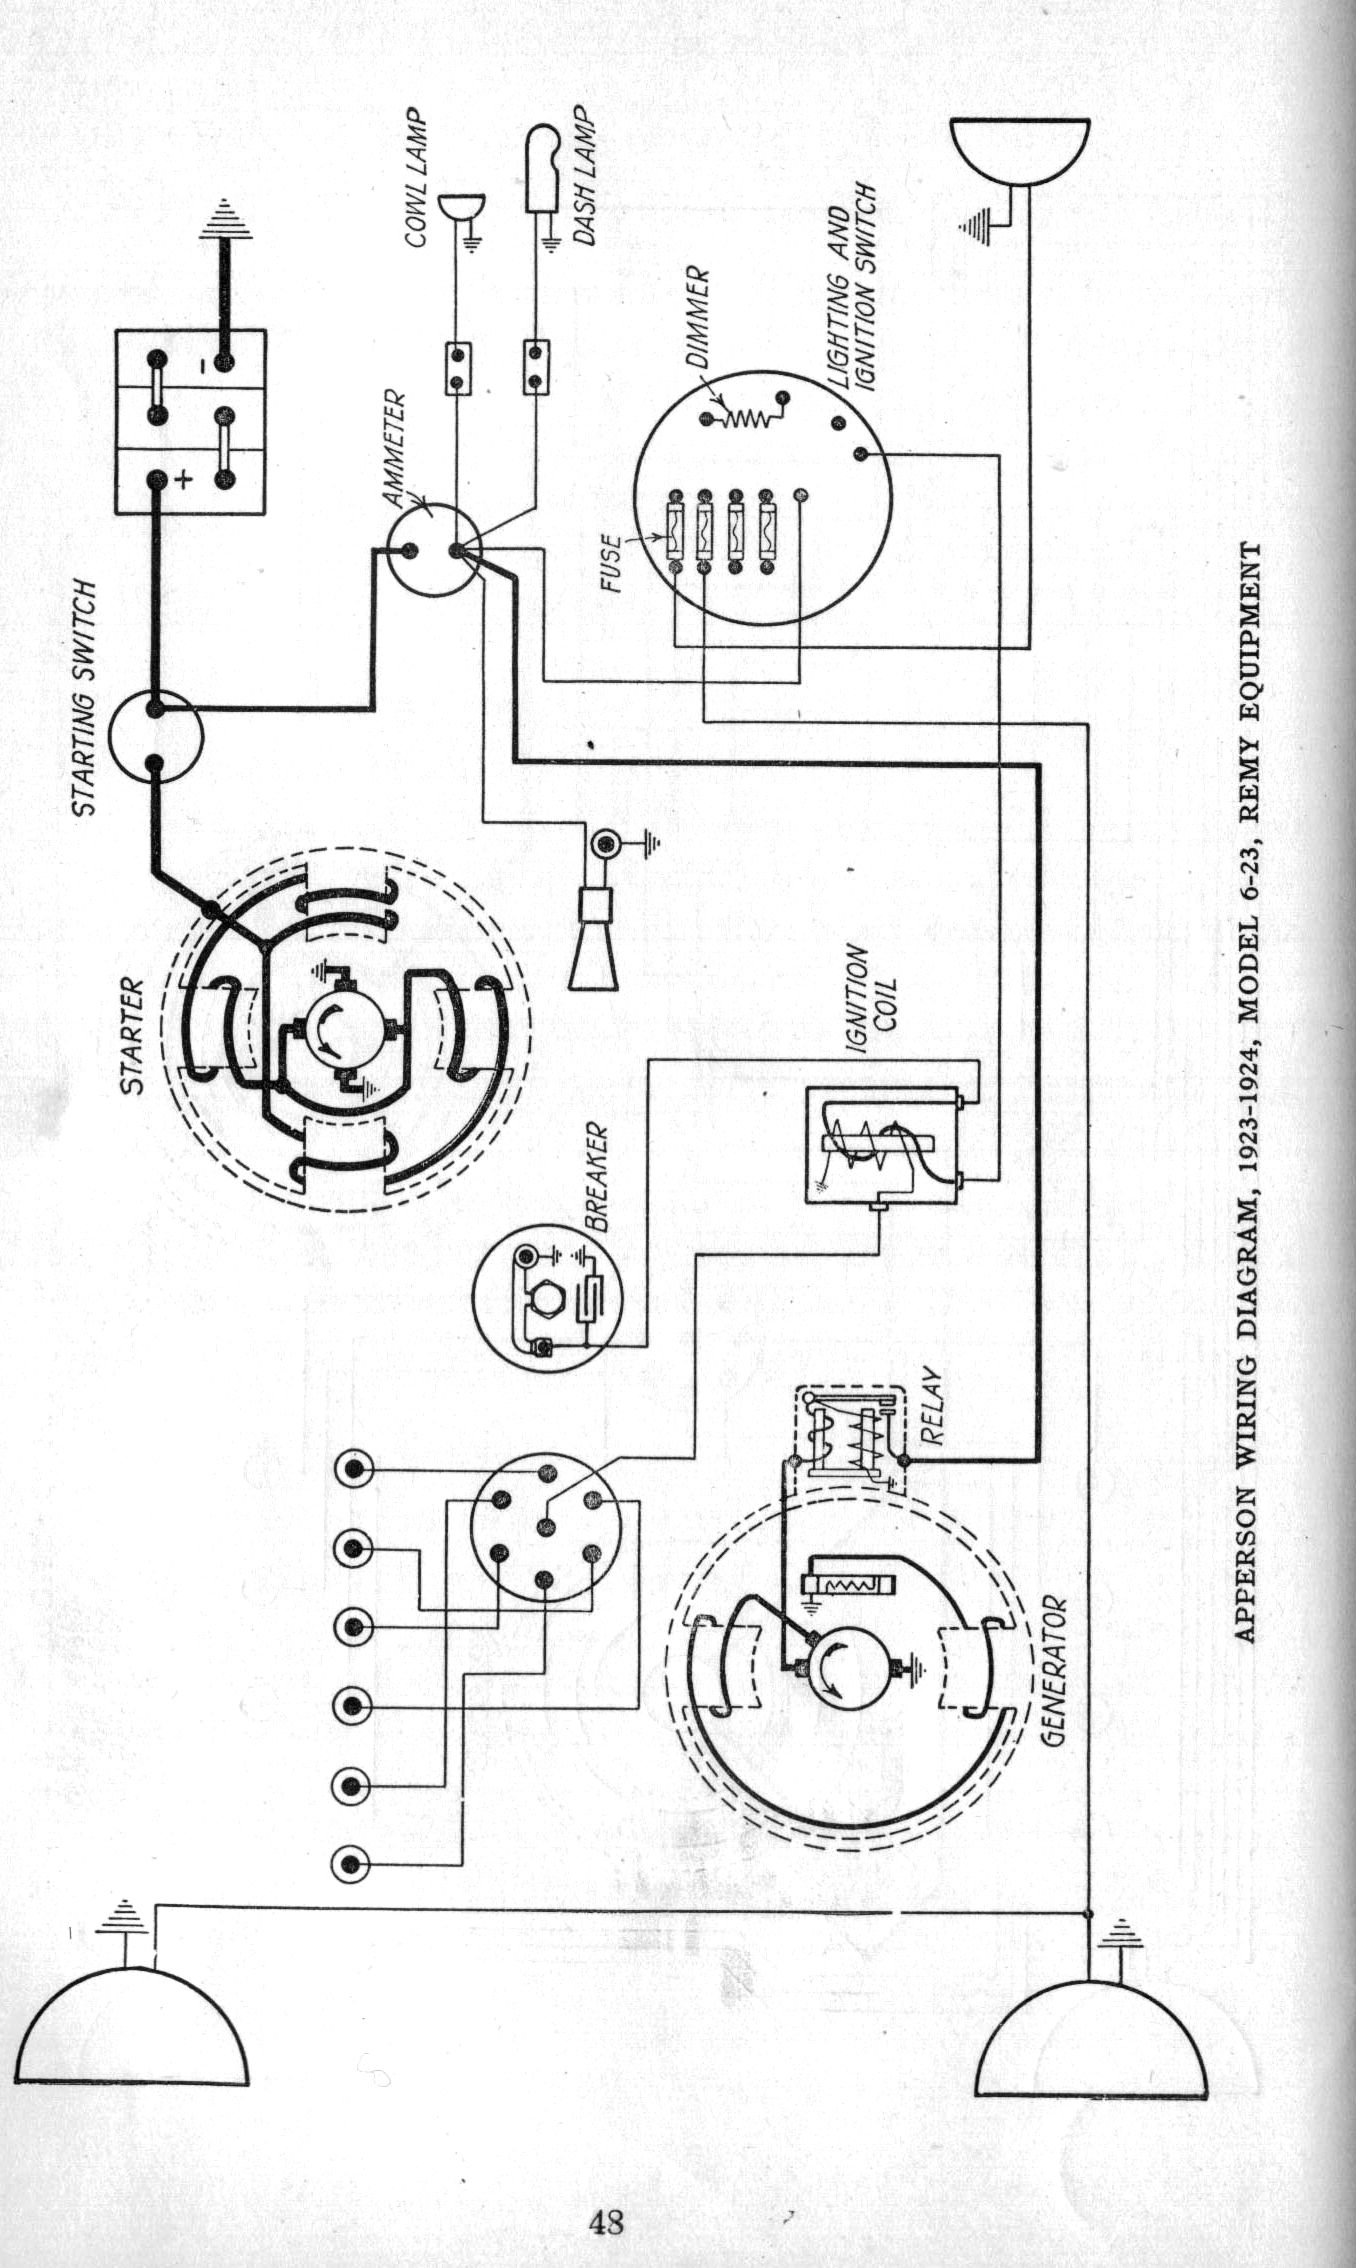 Smc Dc42 Wiring Diagram Libraries Manifold Block Model Libraryearly 1920 S Apperson And Buick Diagrams The Old